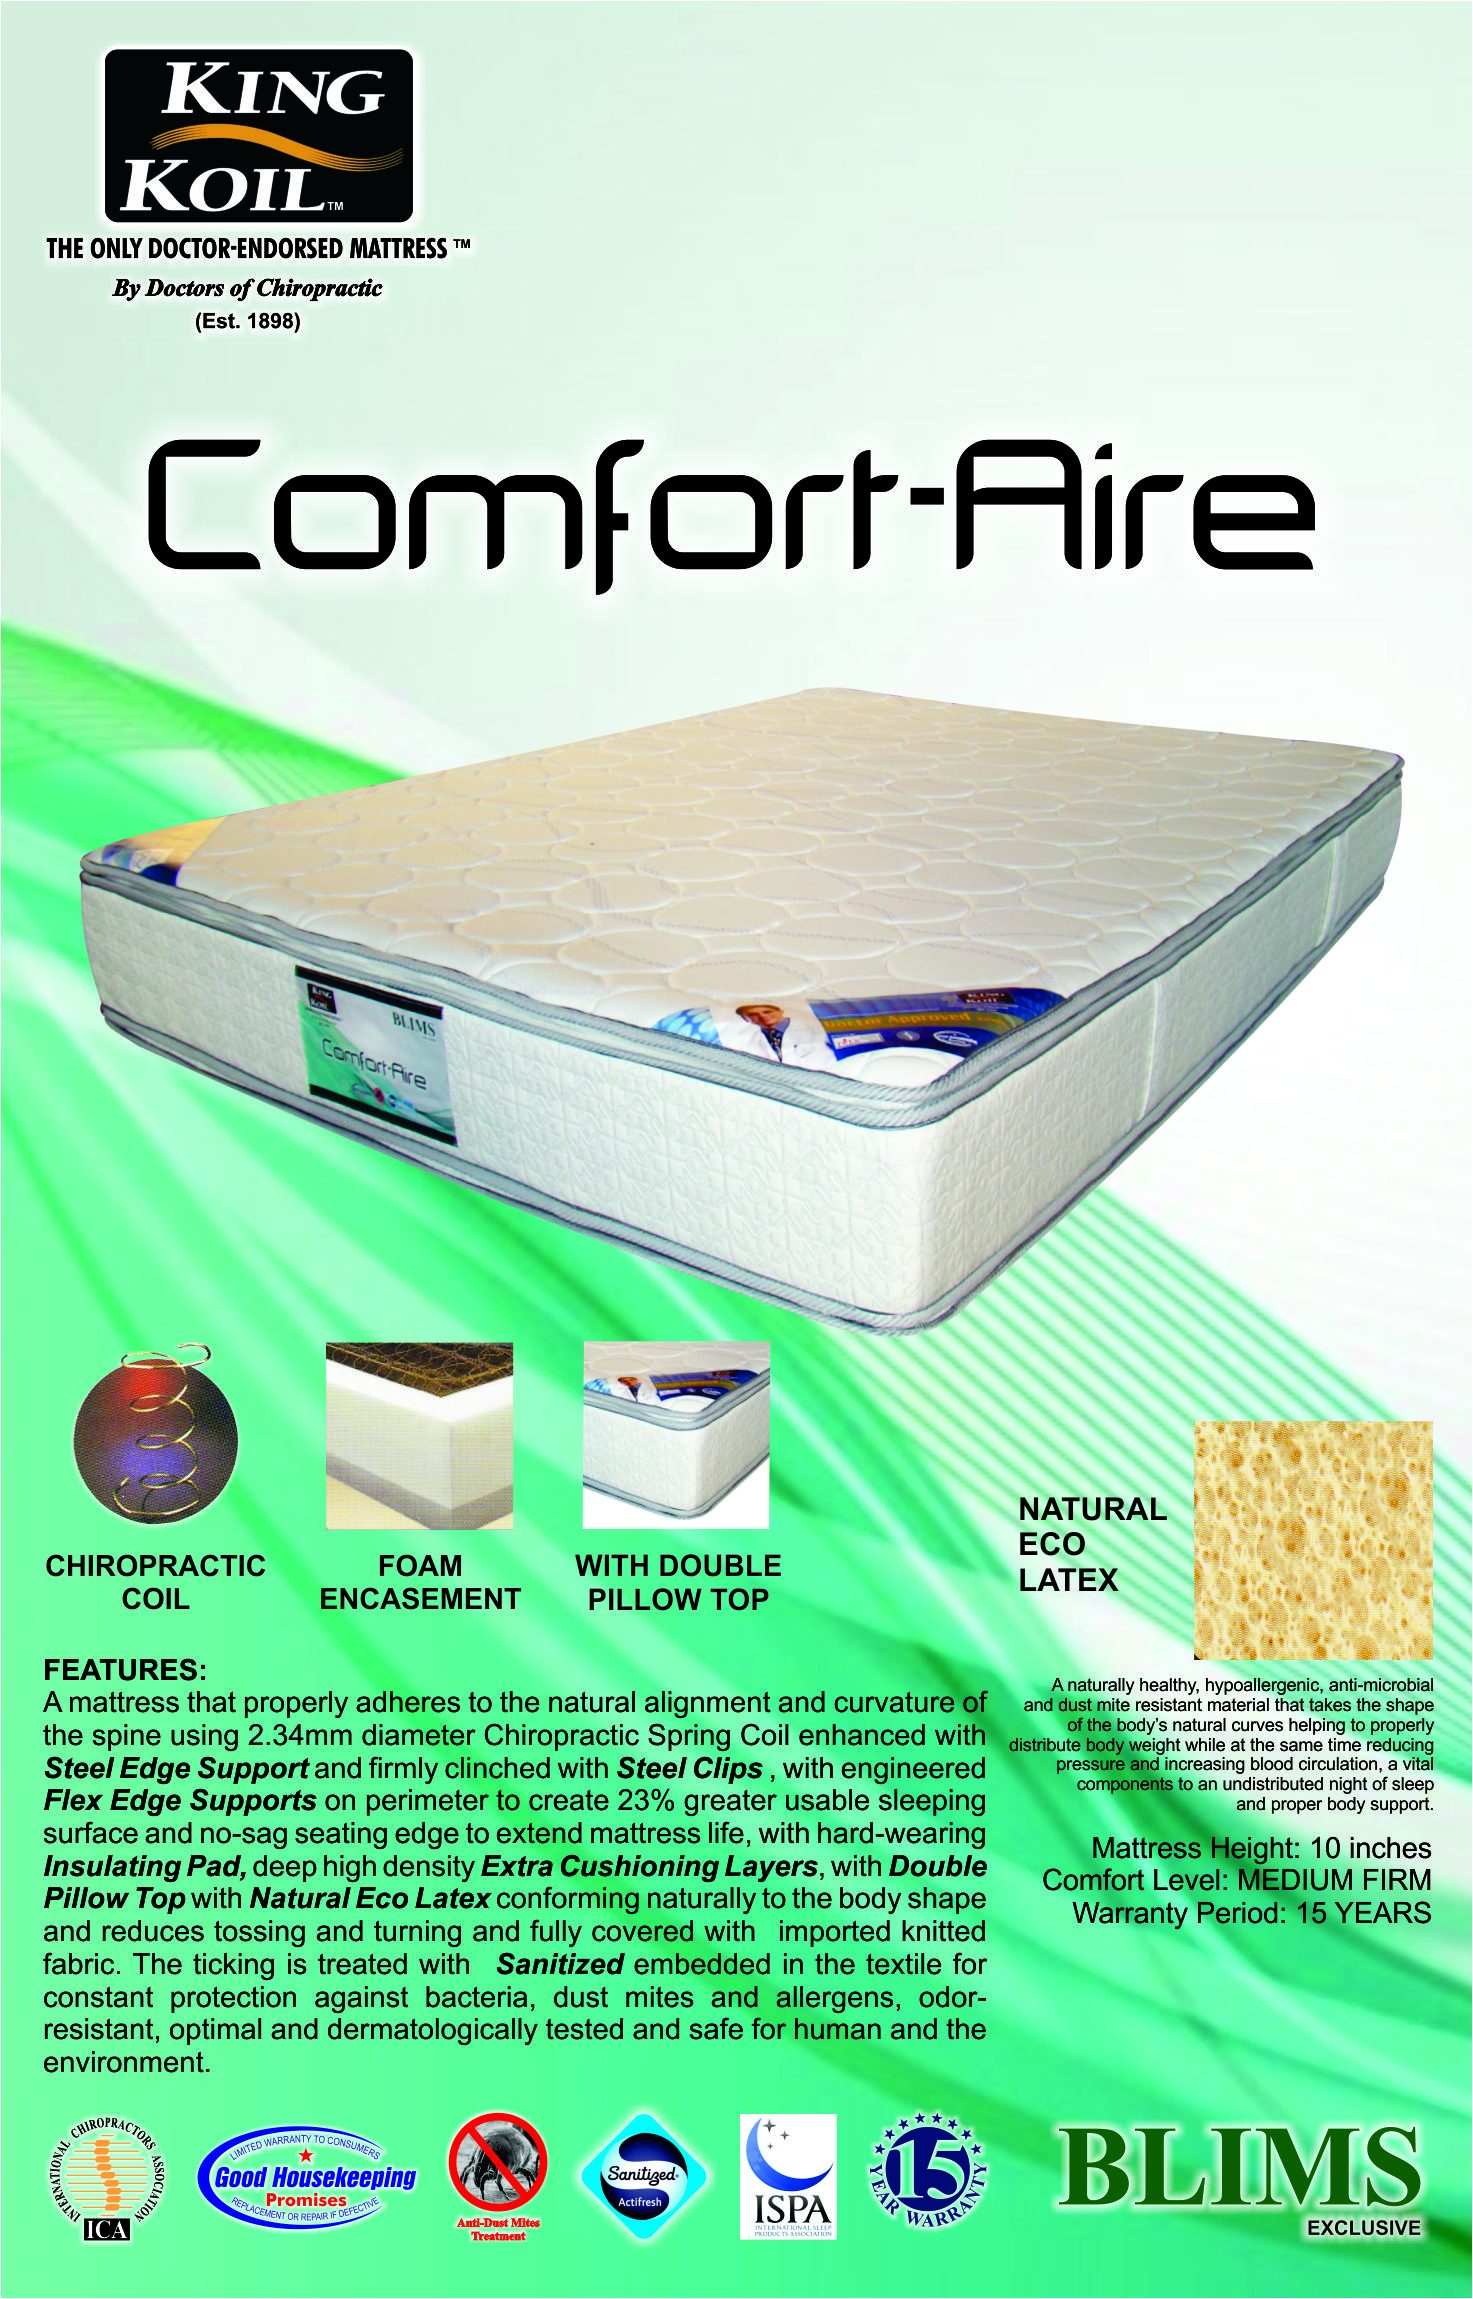 New Comfort aire